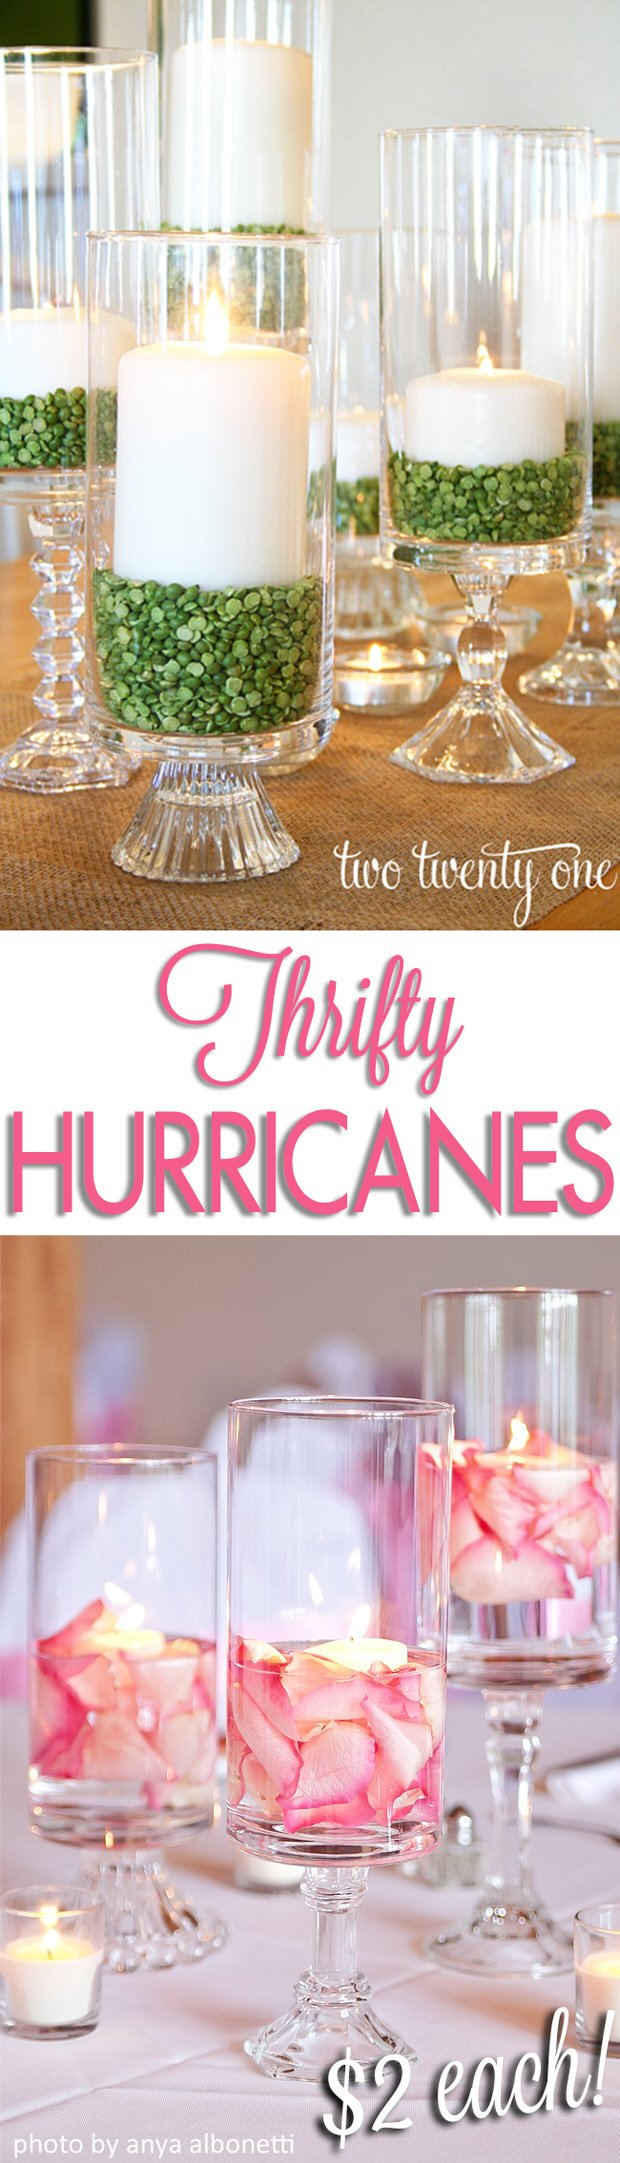 thrifty-hurricanes-1